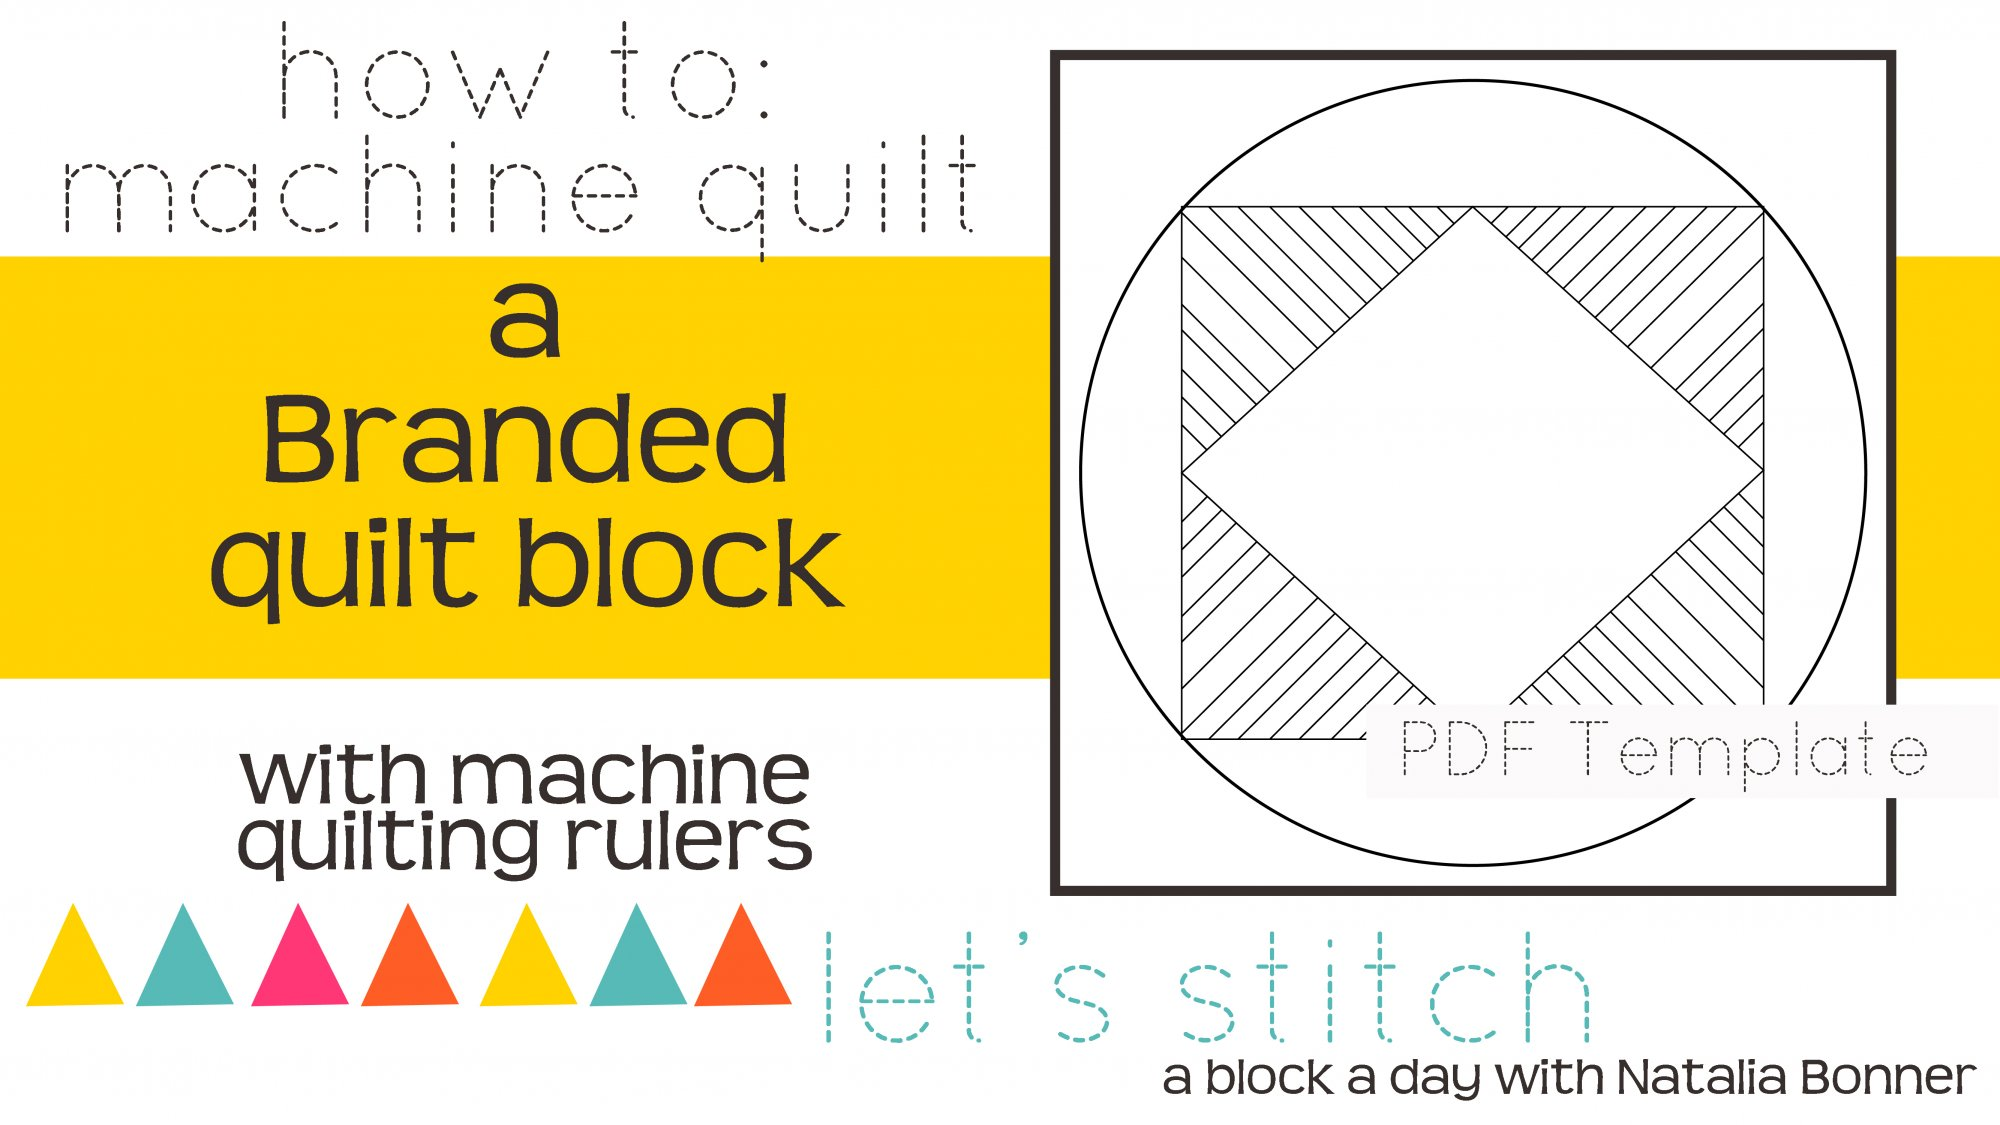 Let's Stitch - A Block a Day With Natalia Bonner - PDF - Branded